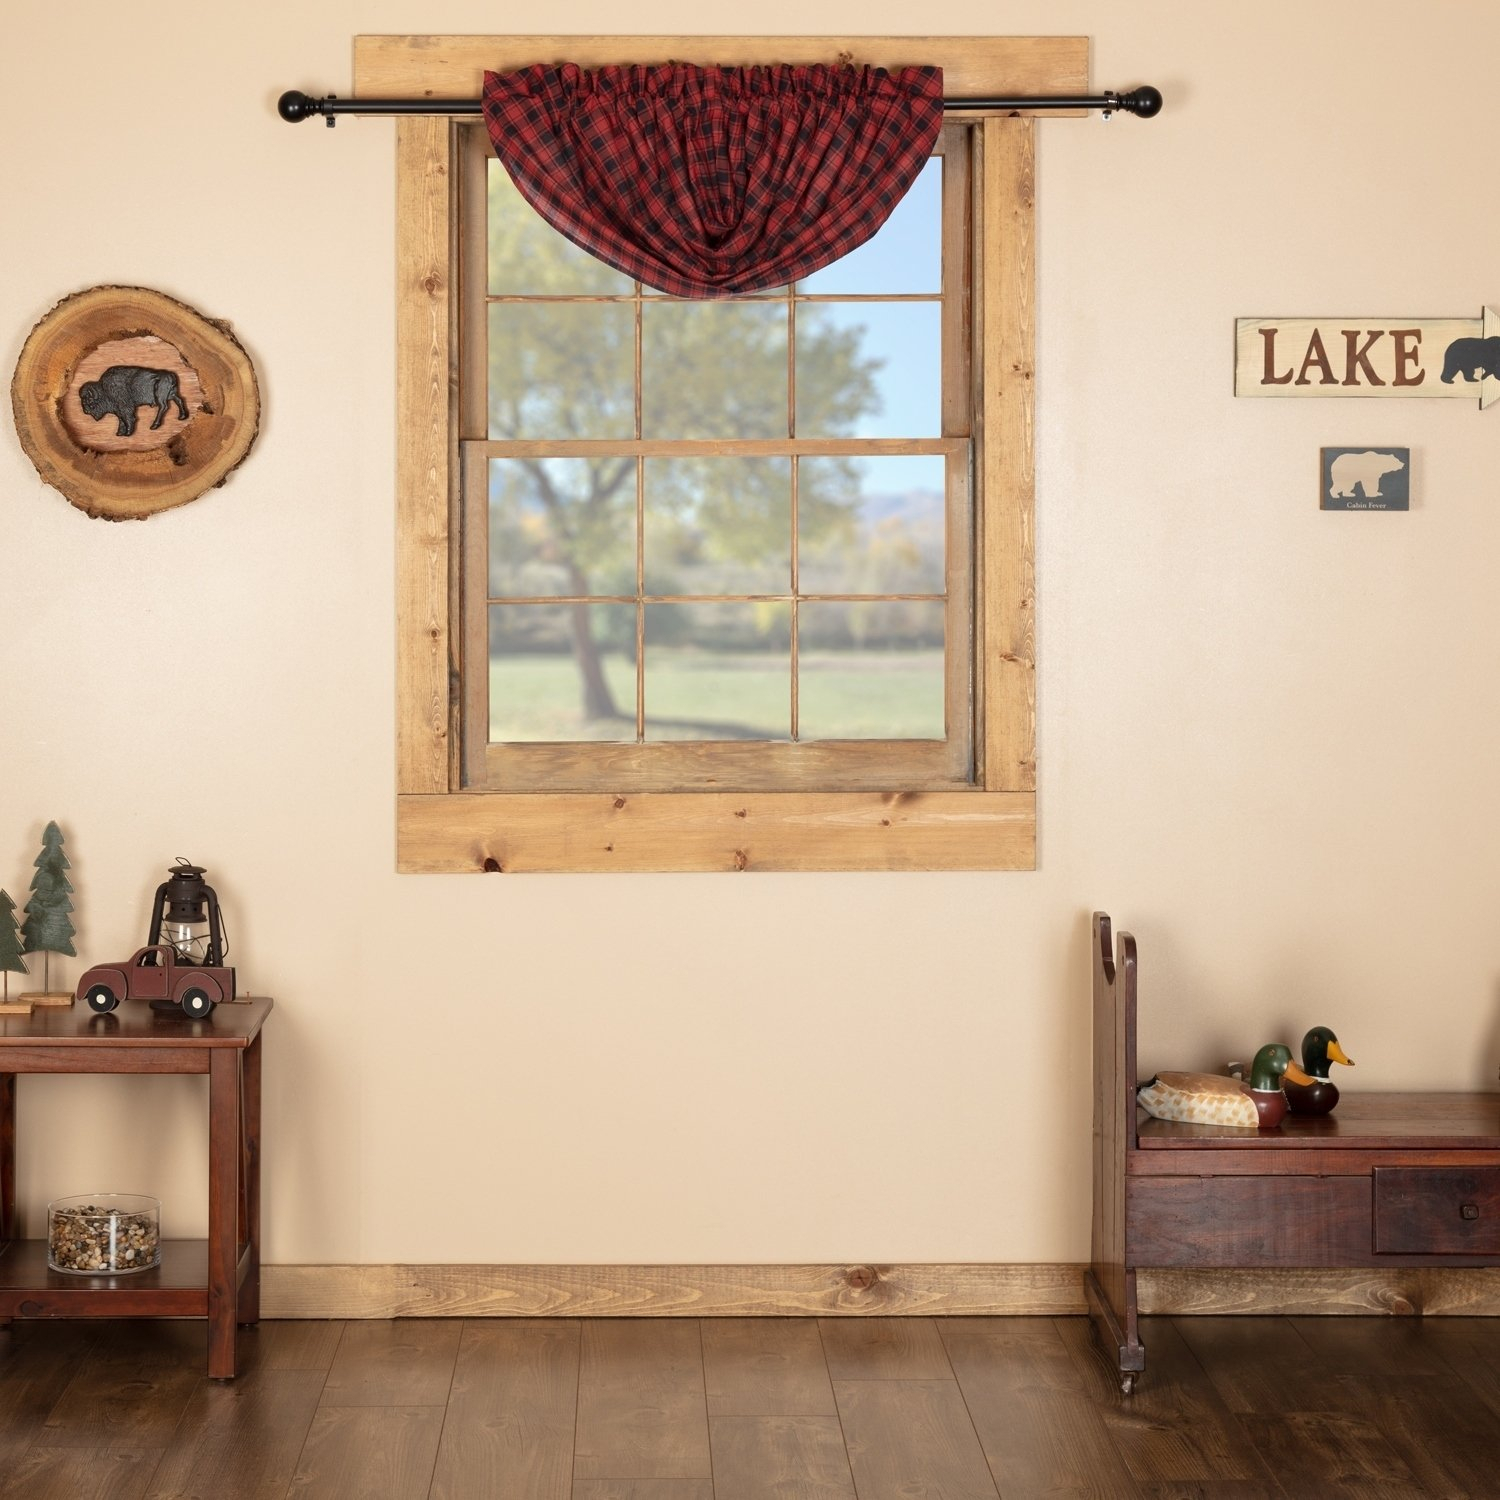 Red Rustic Kitchen Curtains Shasta Cabin Balloon Valance Rod Inside Red Rustic Kitchen Curtains (Gallery 4 of 20)